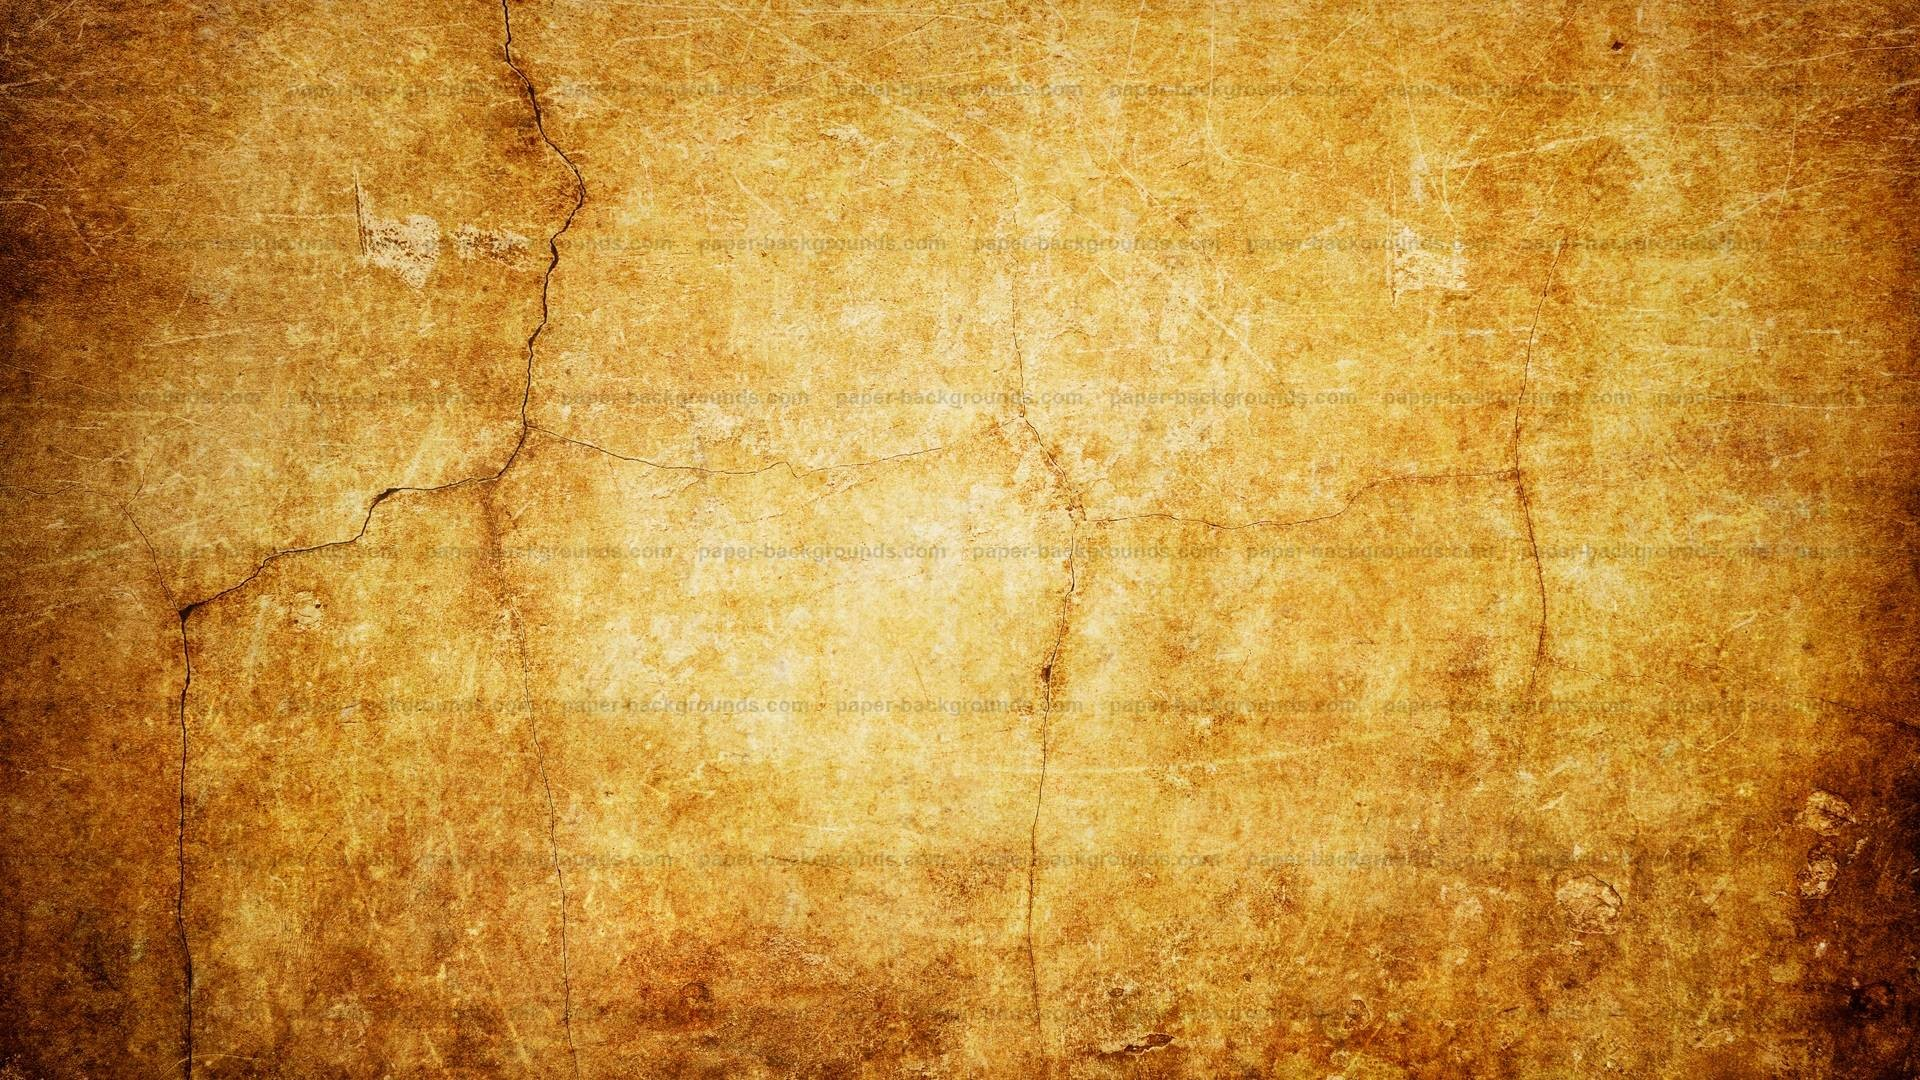 old paper background ·① download free high resolution backgrounds